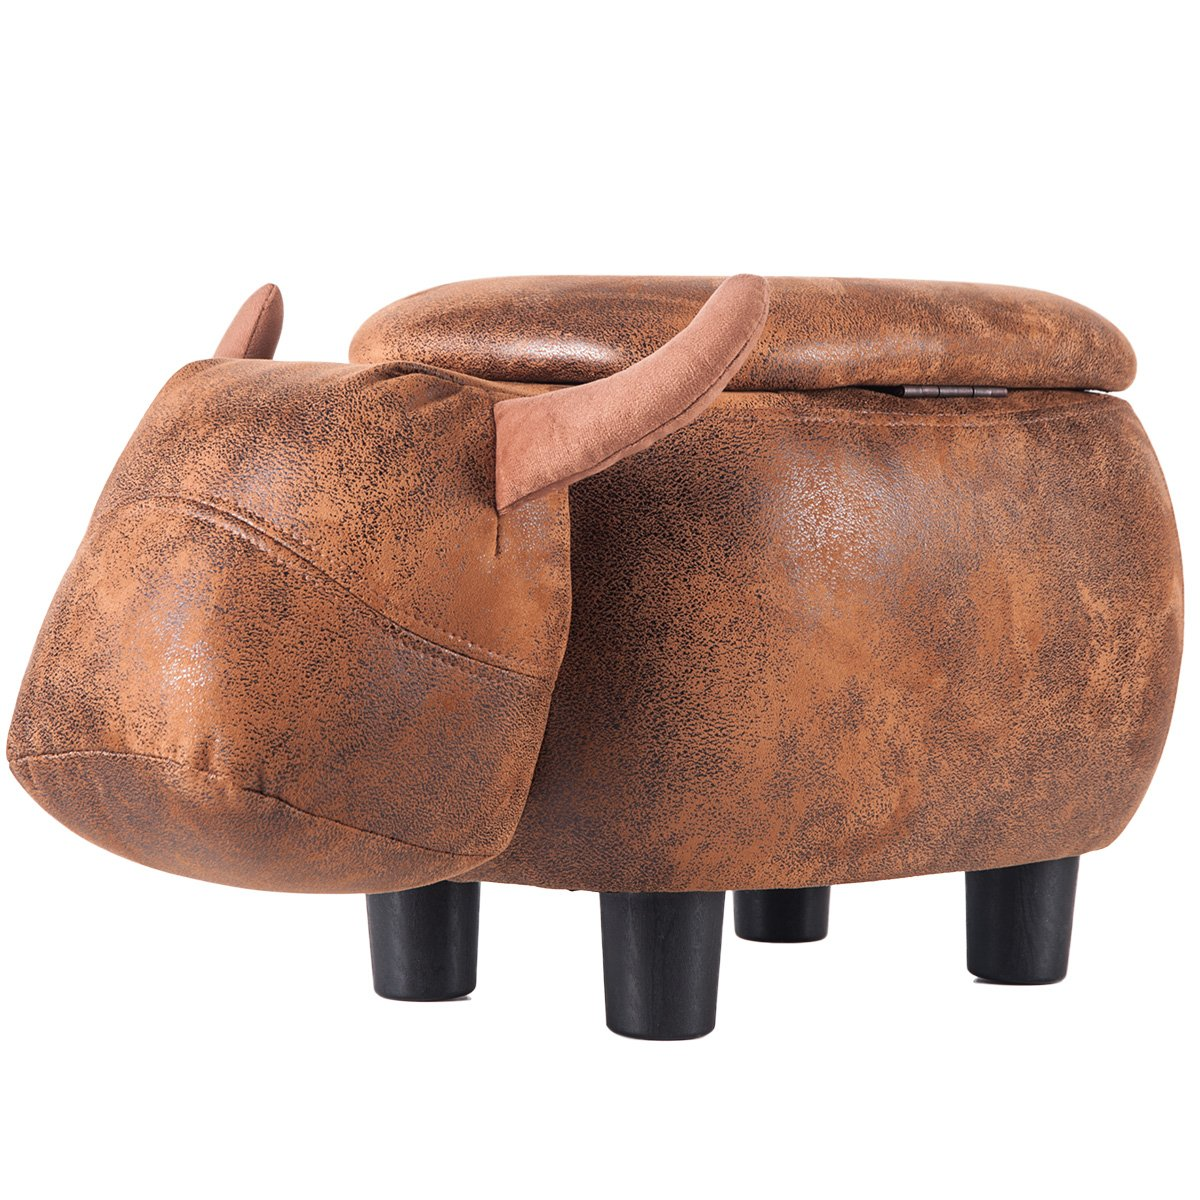 Merax WF036883DAA Have- Fun Series Upholstered Ride-on Storage Ottoman Footrest Stool with Vivid Adorable Animal Shape (Brown Buffalo) by Merax